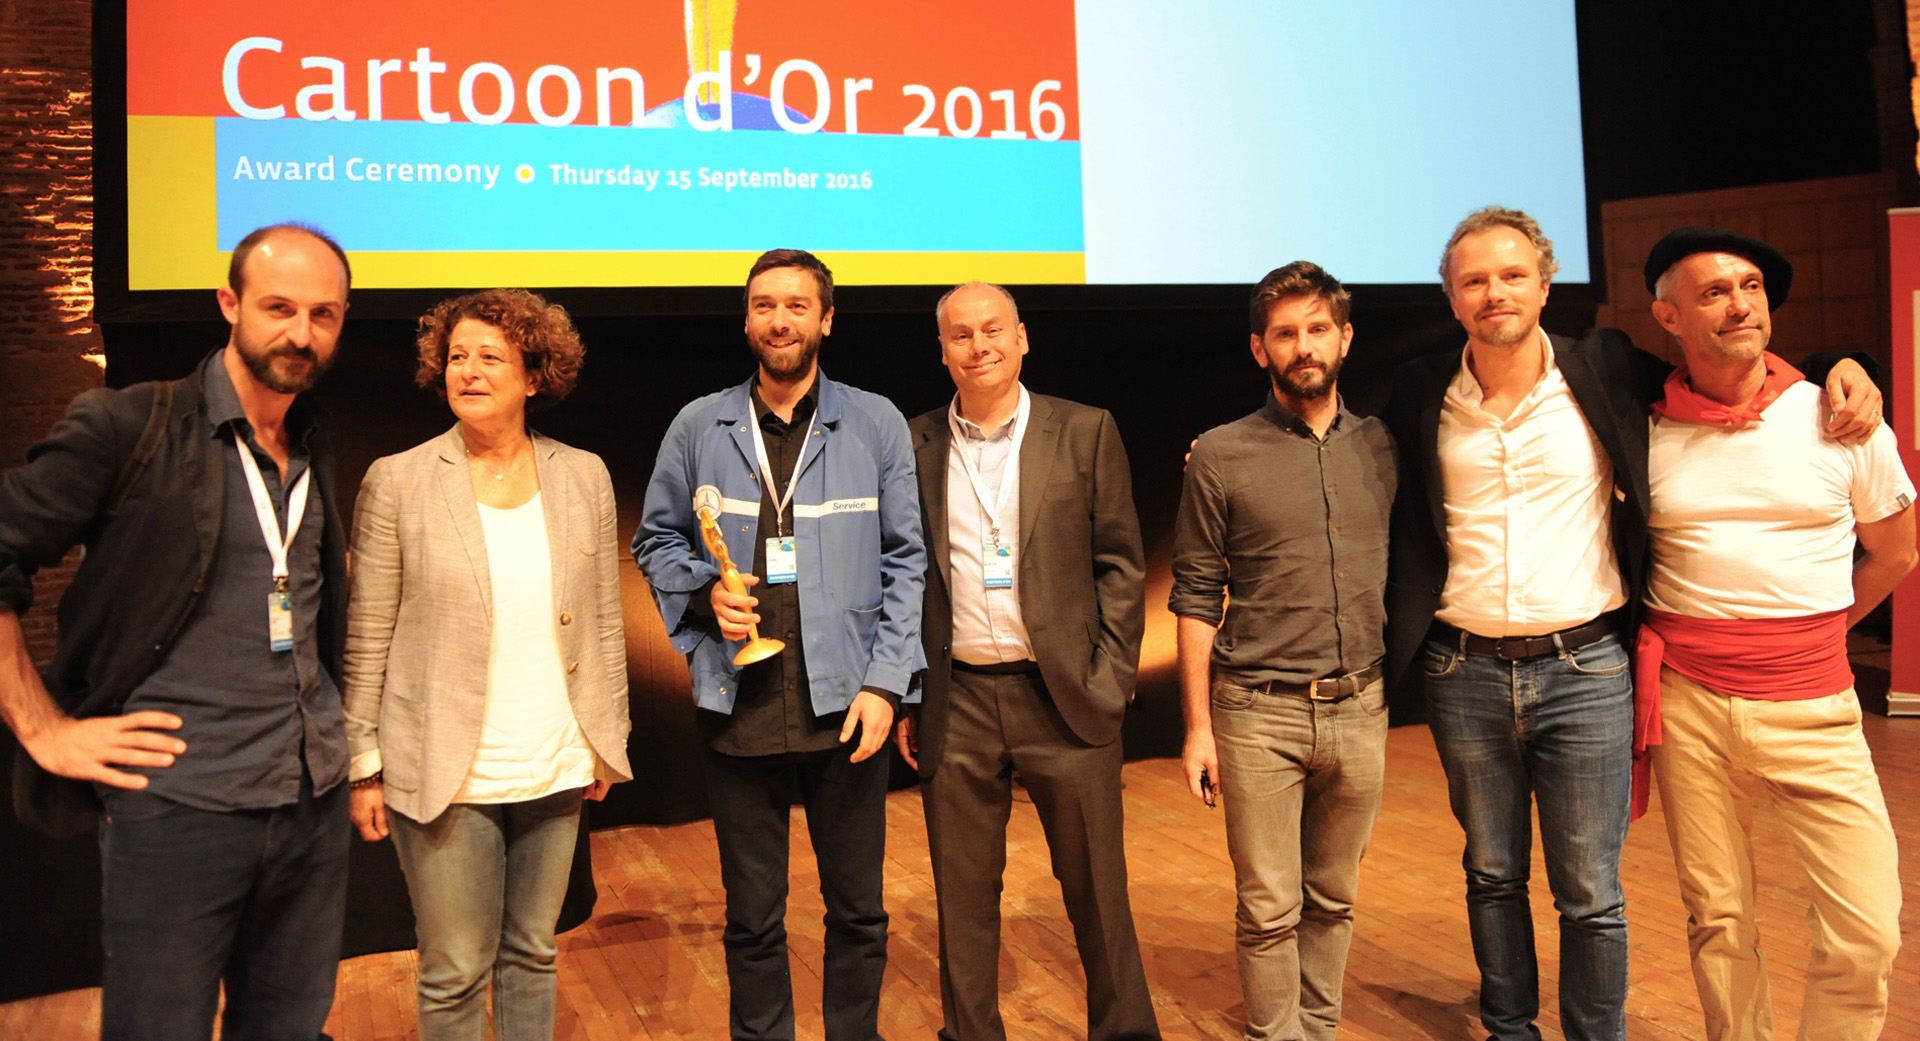 Cartoon D'Or Award Suppressed in Favor of European Animation Awards